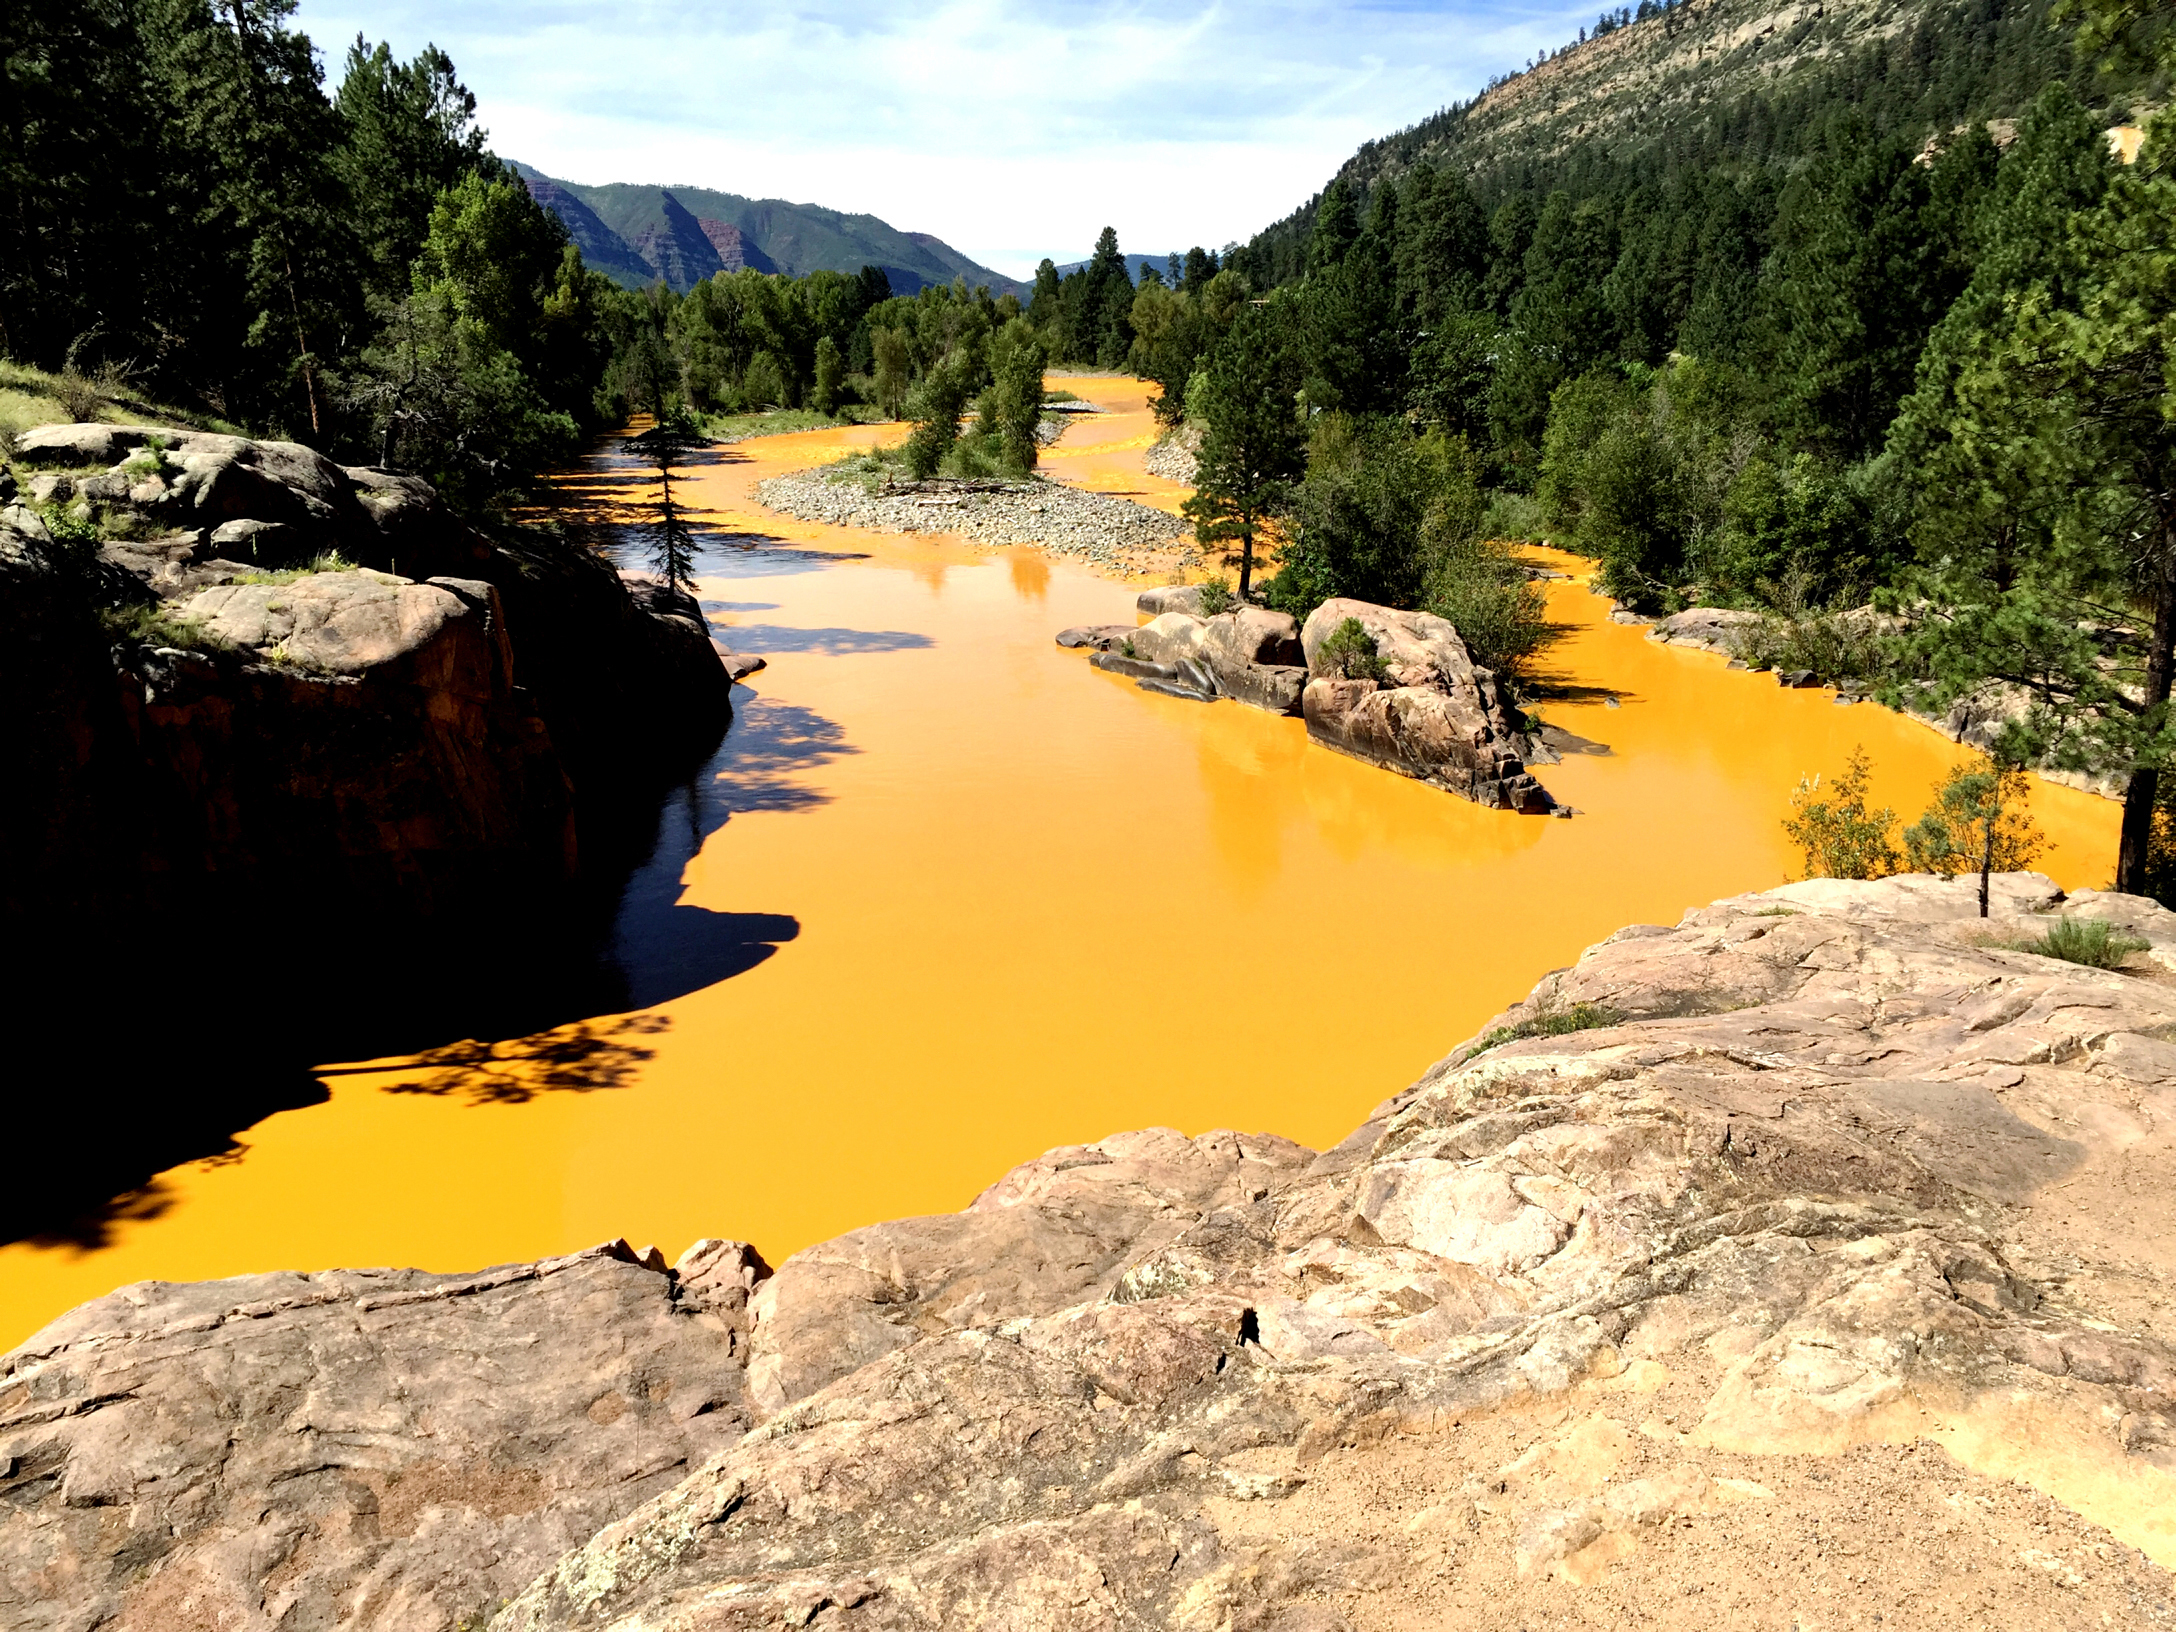 Mine waste from the Gold King Mine north of Silverton fills the Animas River at Bakers Bridge on Aug. 6, 2015 in Durango, Colo.